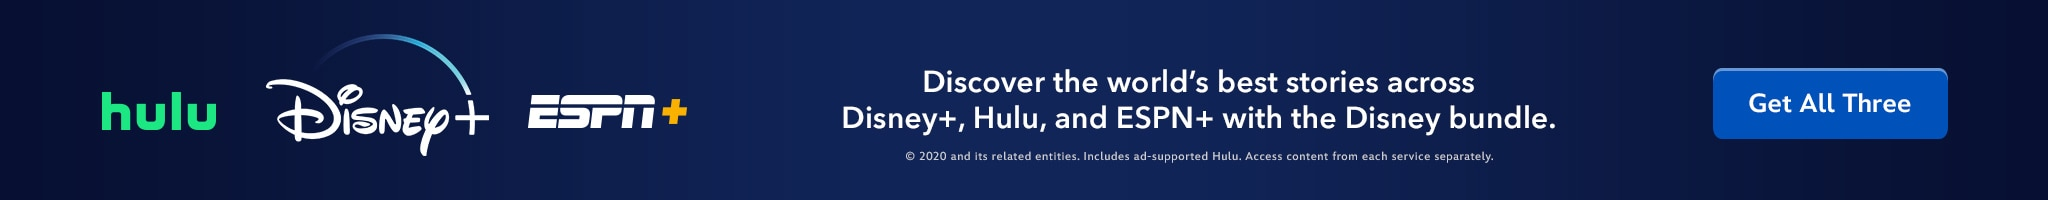 Disney+ | Hulu | ESPN+ | Discover the world's best stories across Disney+, Hulu, and ESPN+ with the Disney bundle. Get All Three.